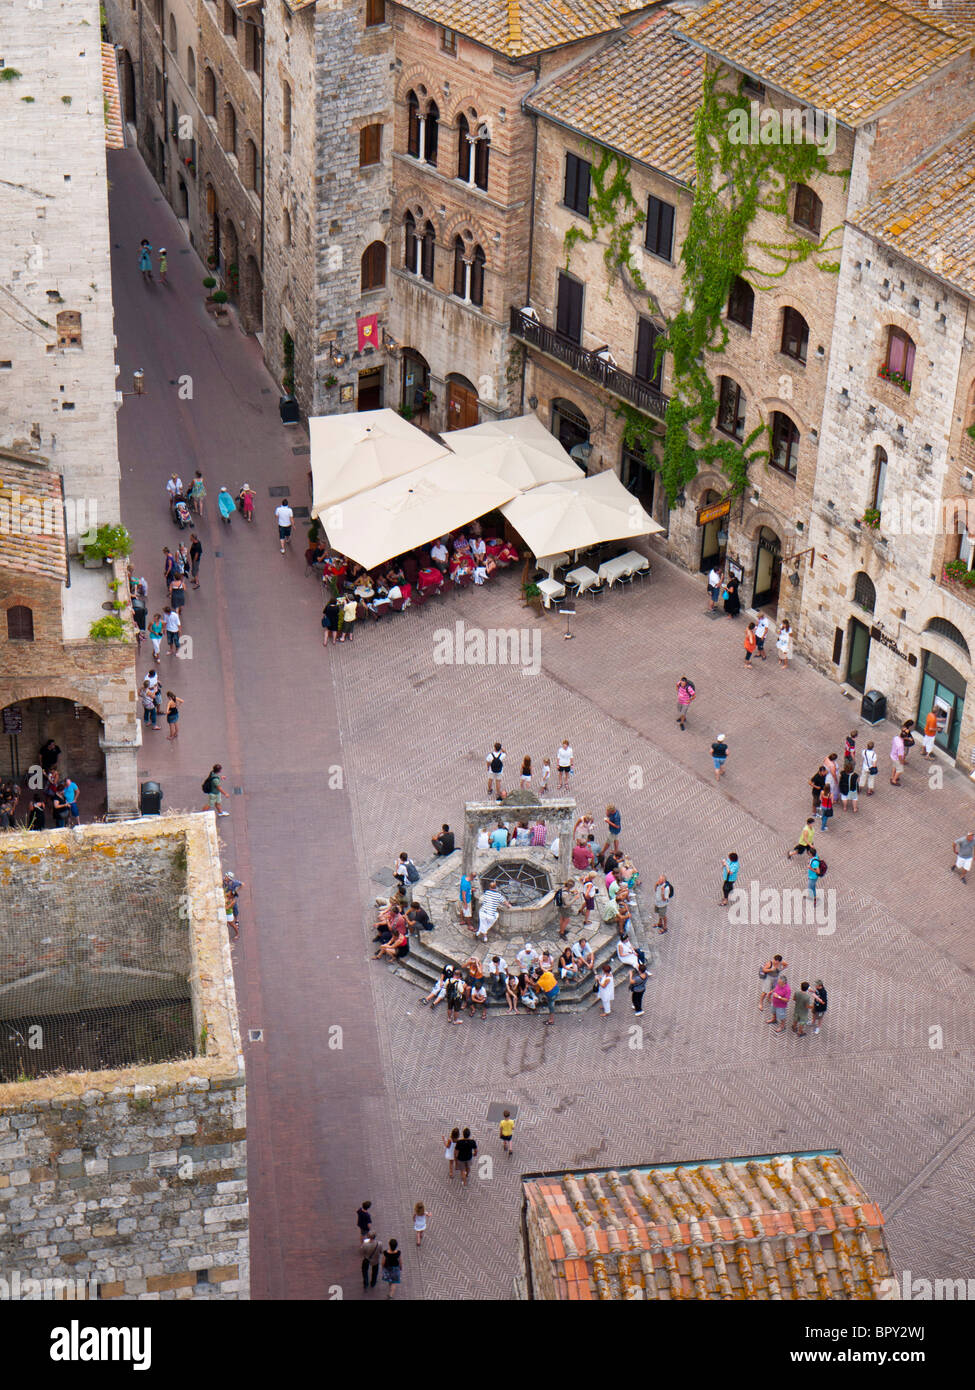 San Gimignano in Tuscany, Italy, mediaval Tuscan town, called medieval Manhattan or the Italian city of towers - Stock Image